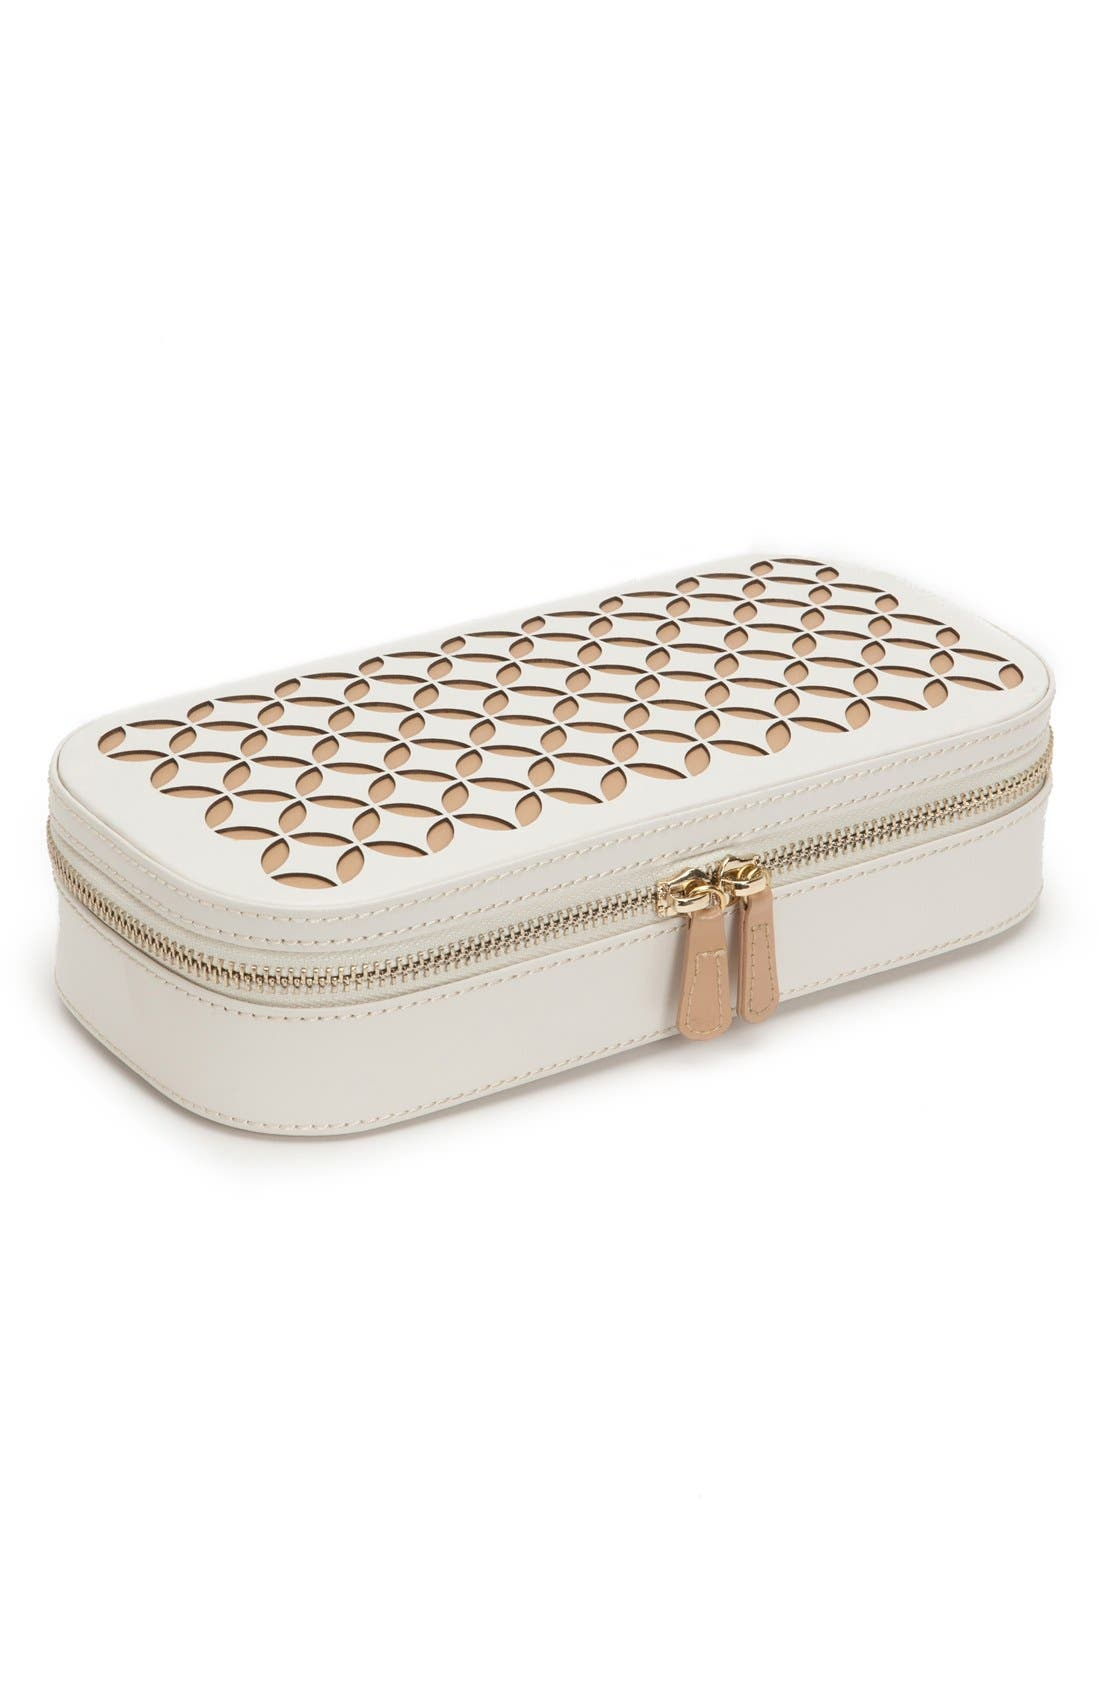 'Chloe' Zip Jewelry Case,                             Alternate thumbnail 3, color,                             900